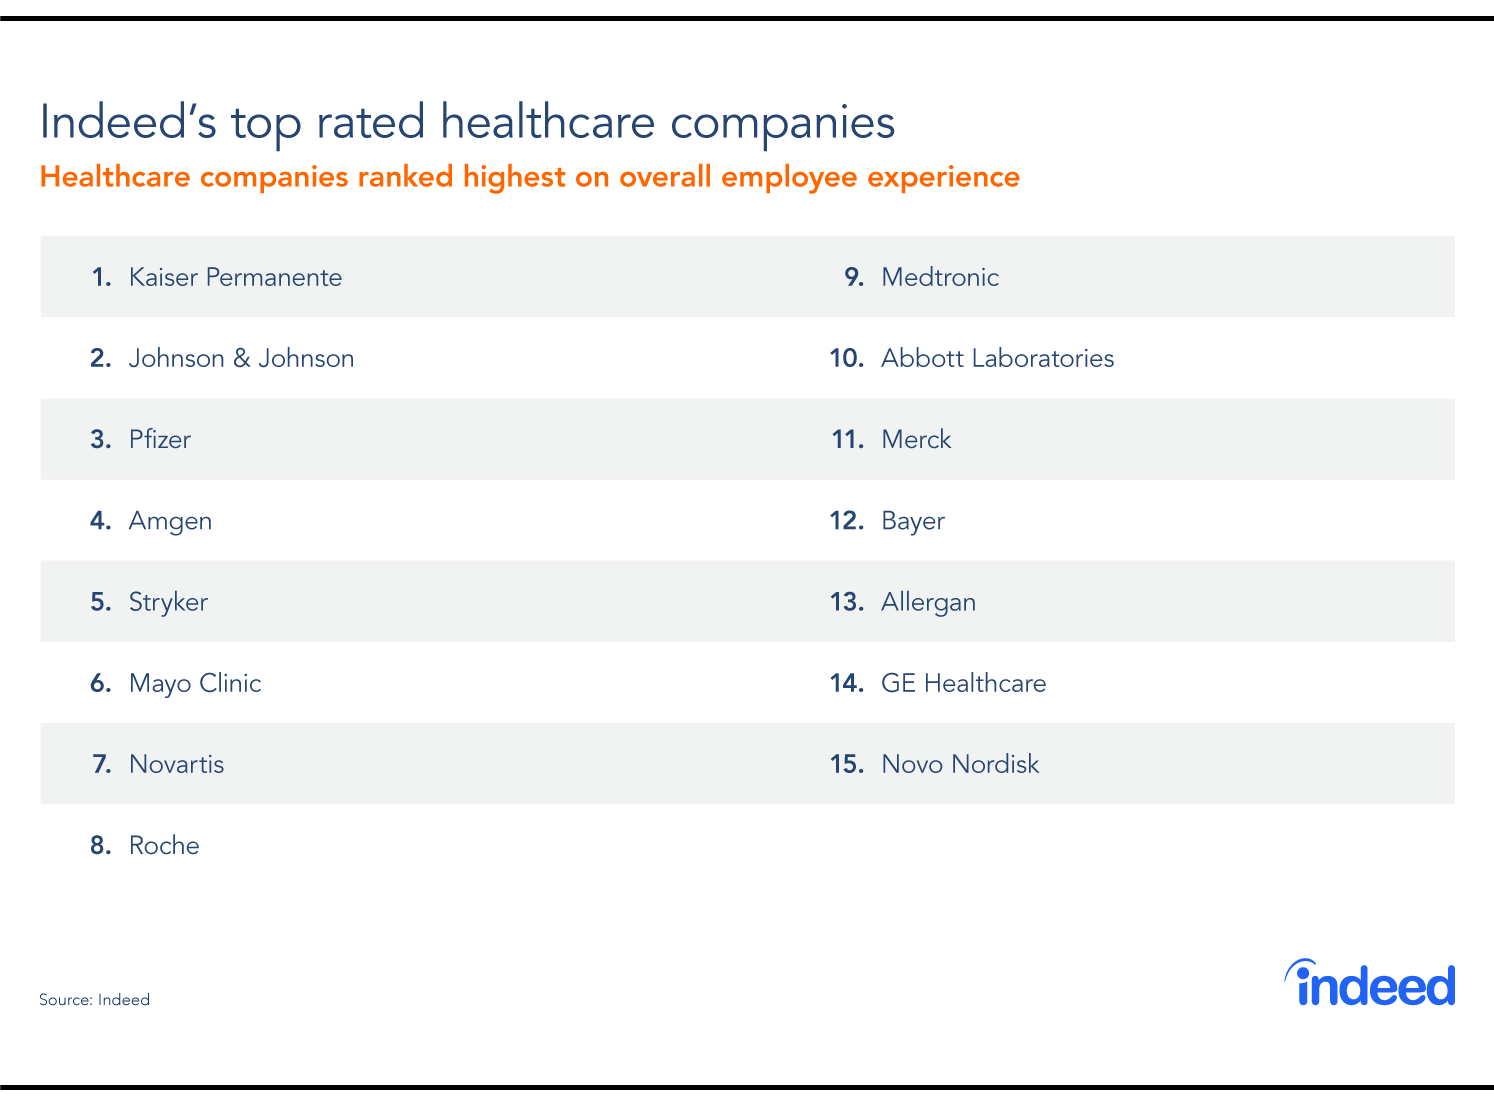 Table compiled of 15 top rated healthcare companies with highest overall employee experience reviews.